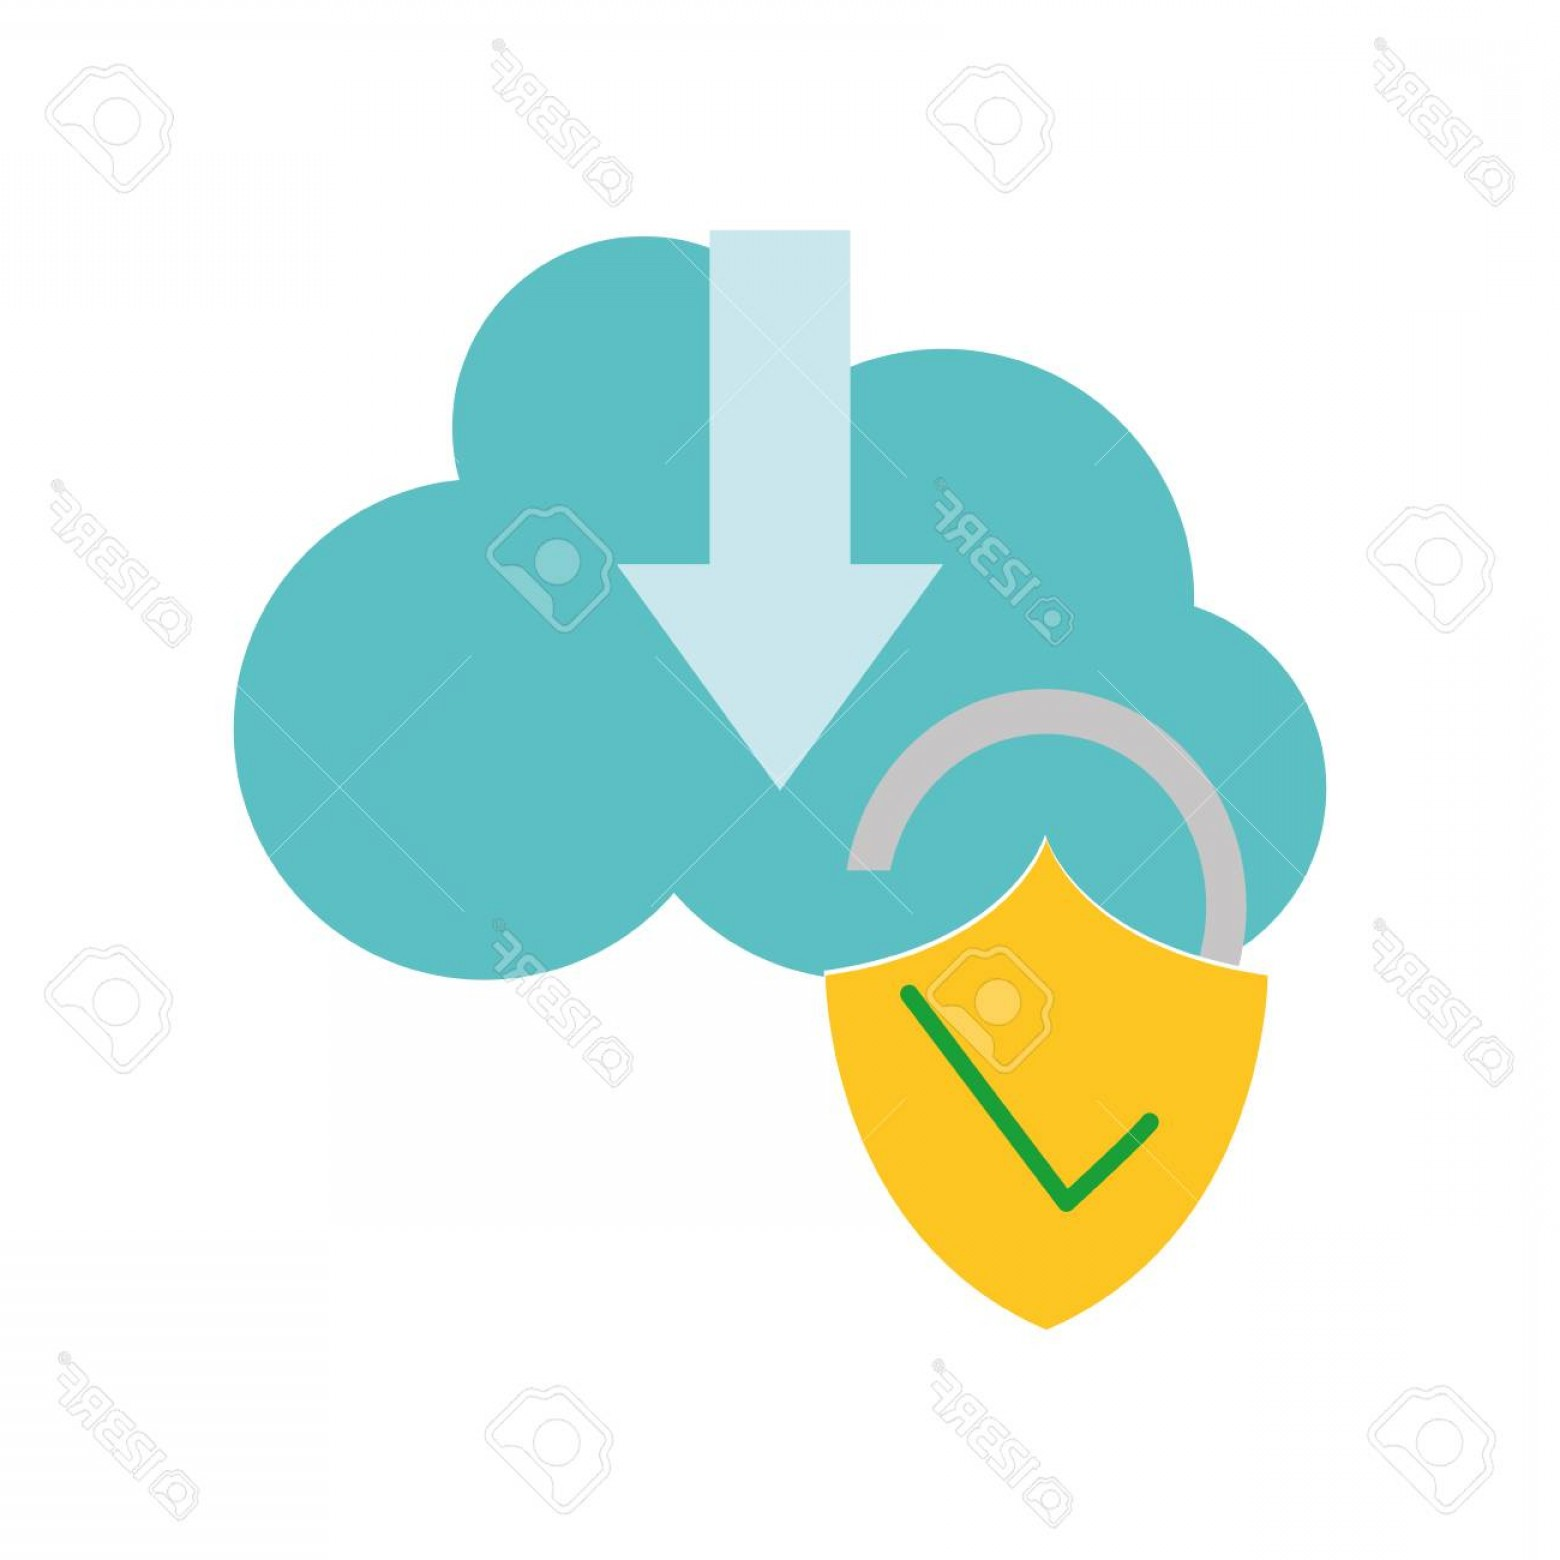 Downloadable Vector Cross: Photostock Vector Colorful Cloud Data Downloading And Padlock Good Security Vector Illustration